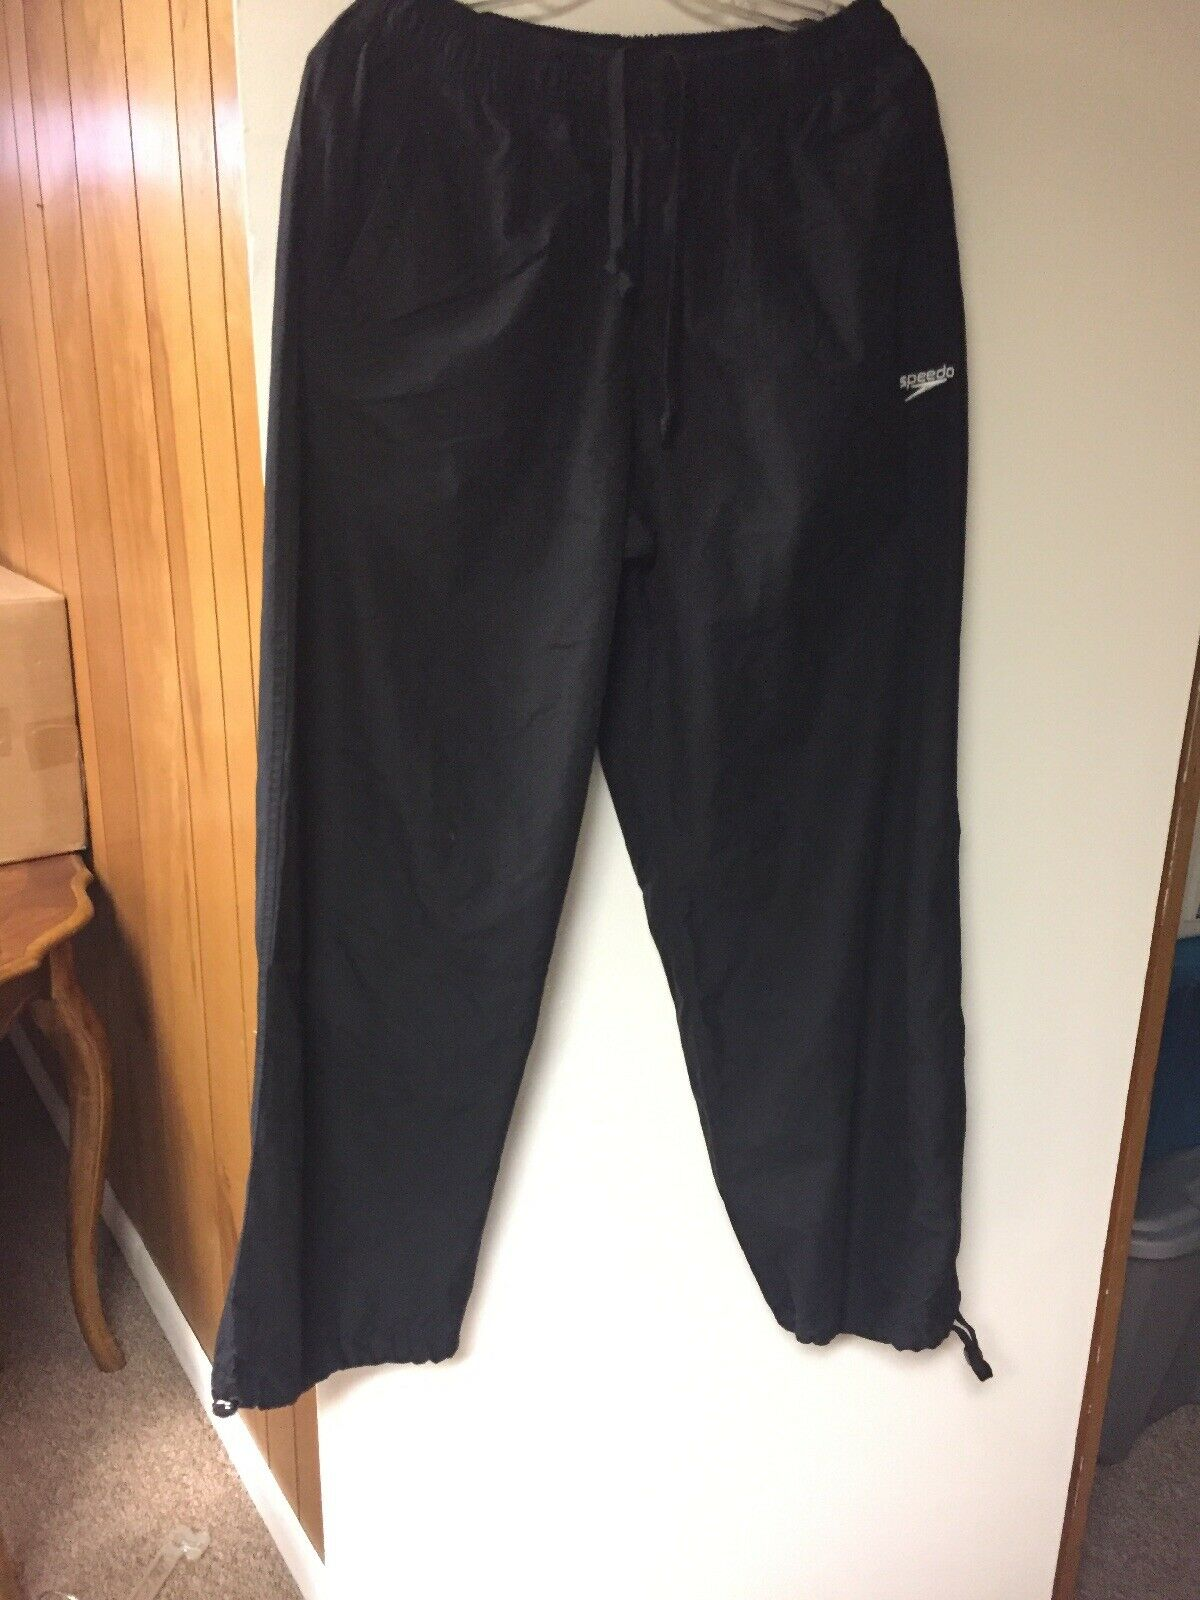 Speedo Men's 100% Polyester water resistant pants with adjustable scrunch